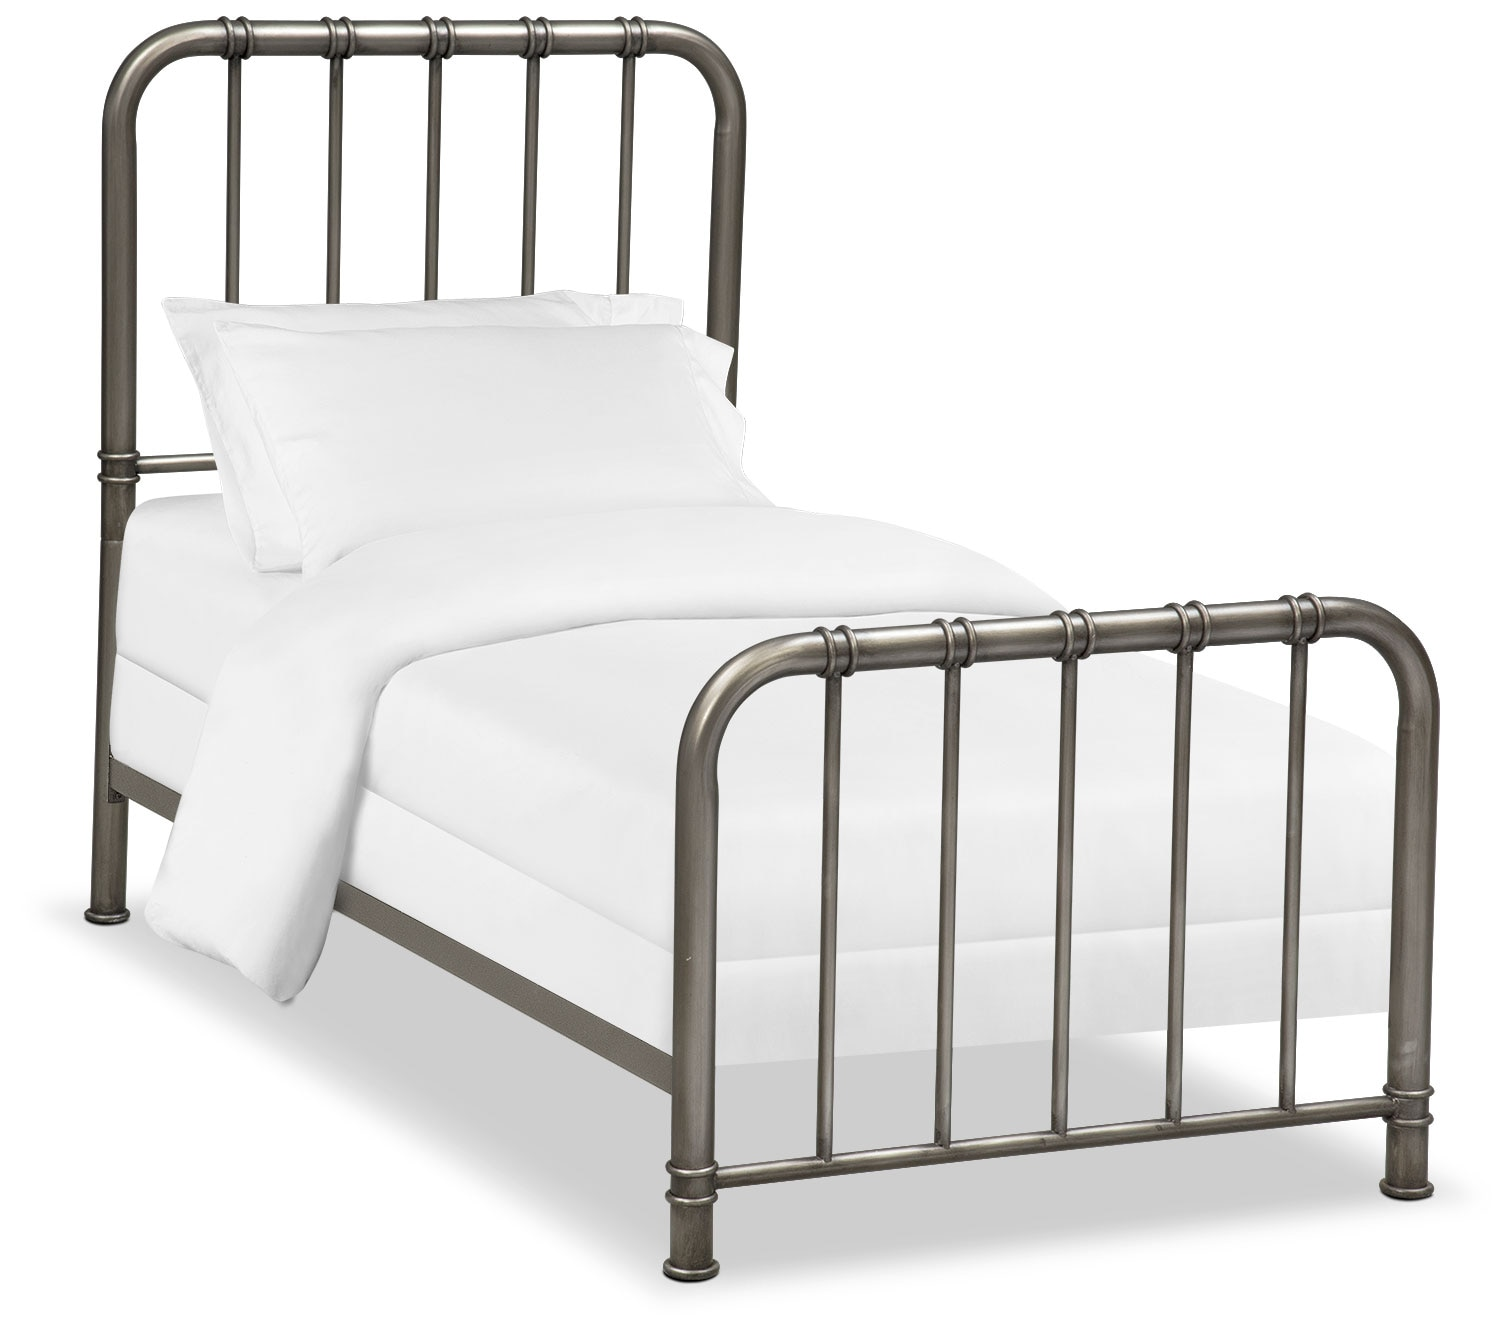 Bedroom Furniture - Pendleton Youth Full Bed - Gunmetal